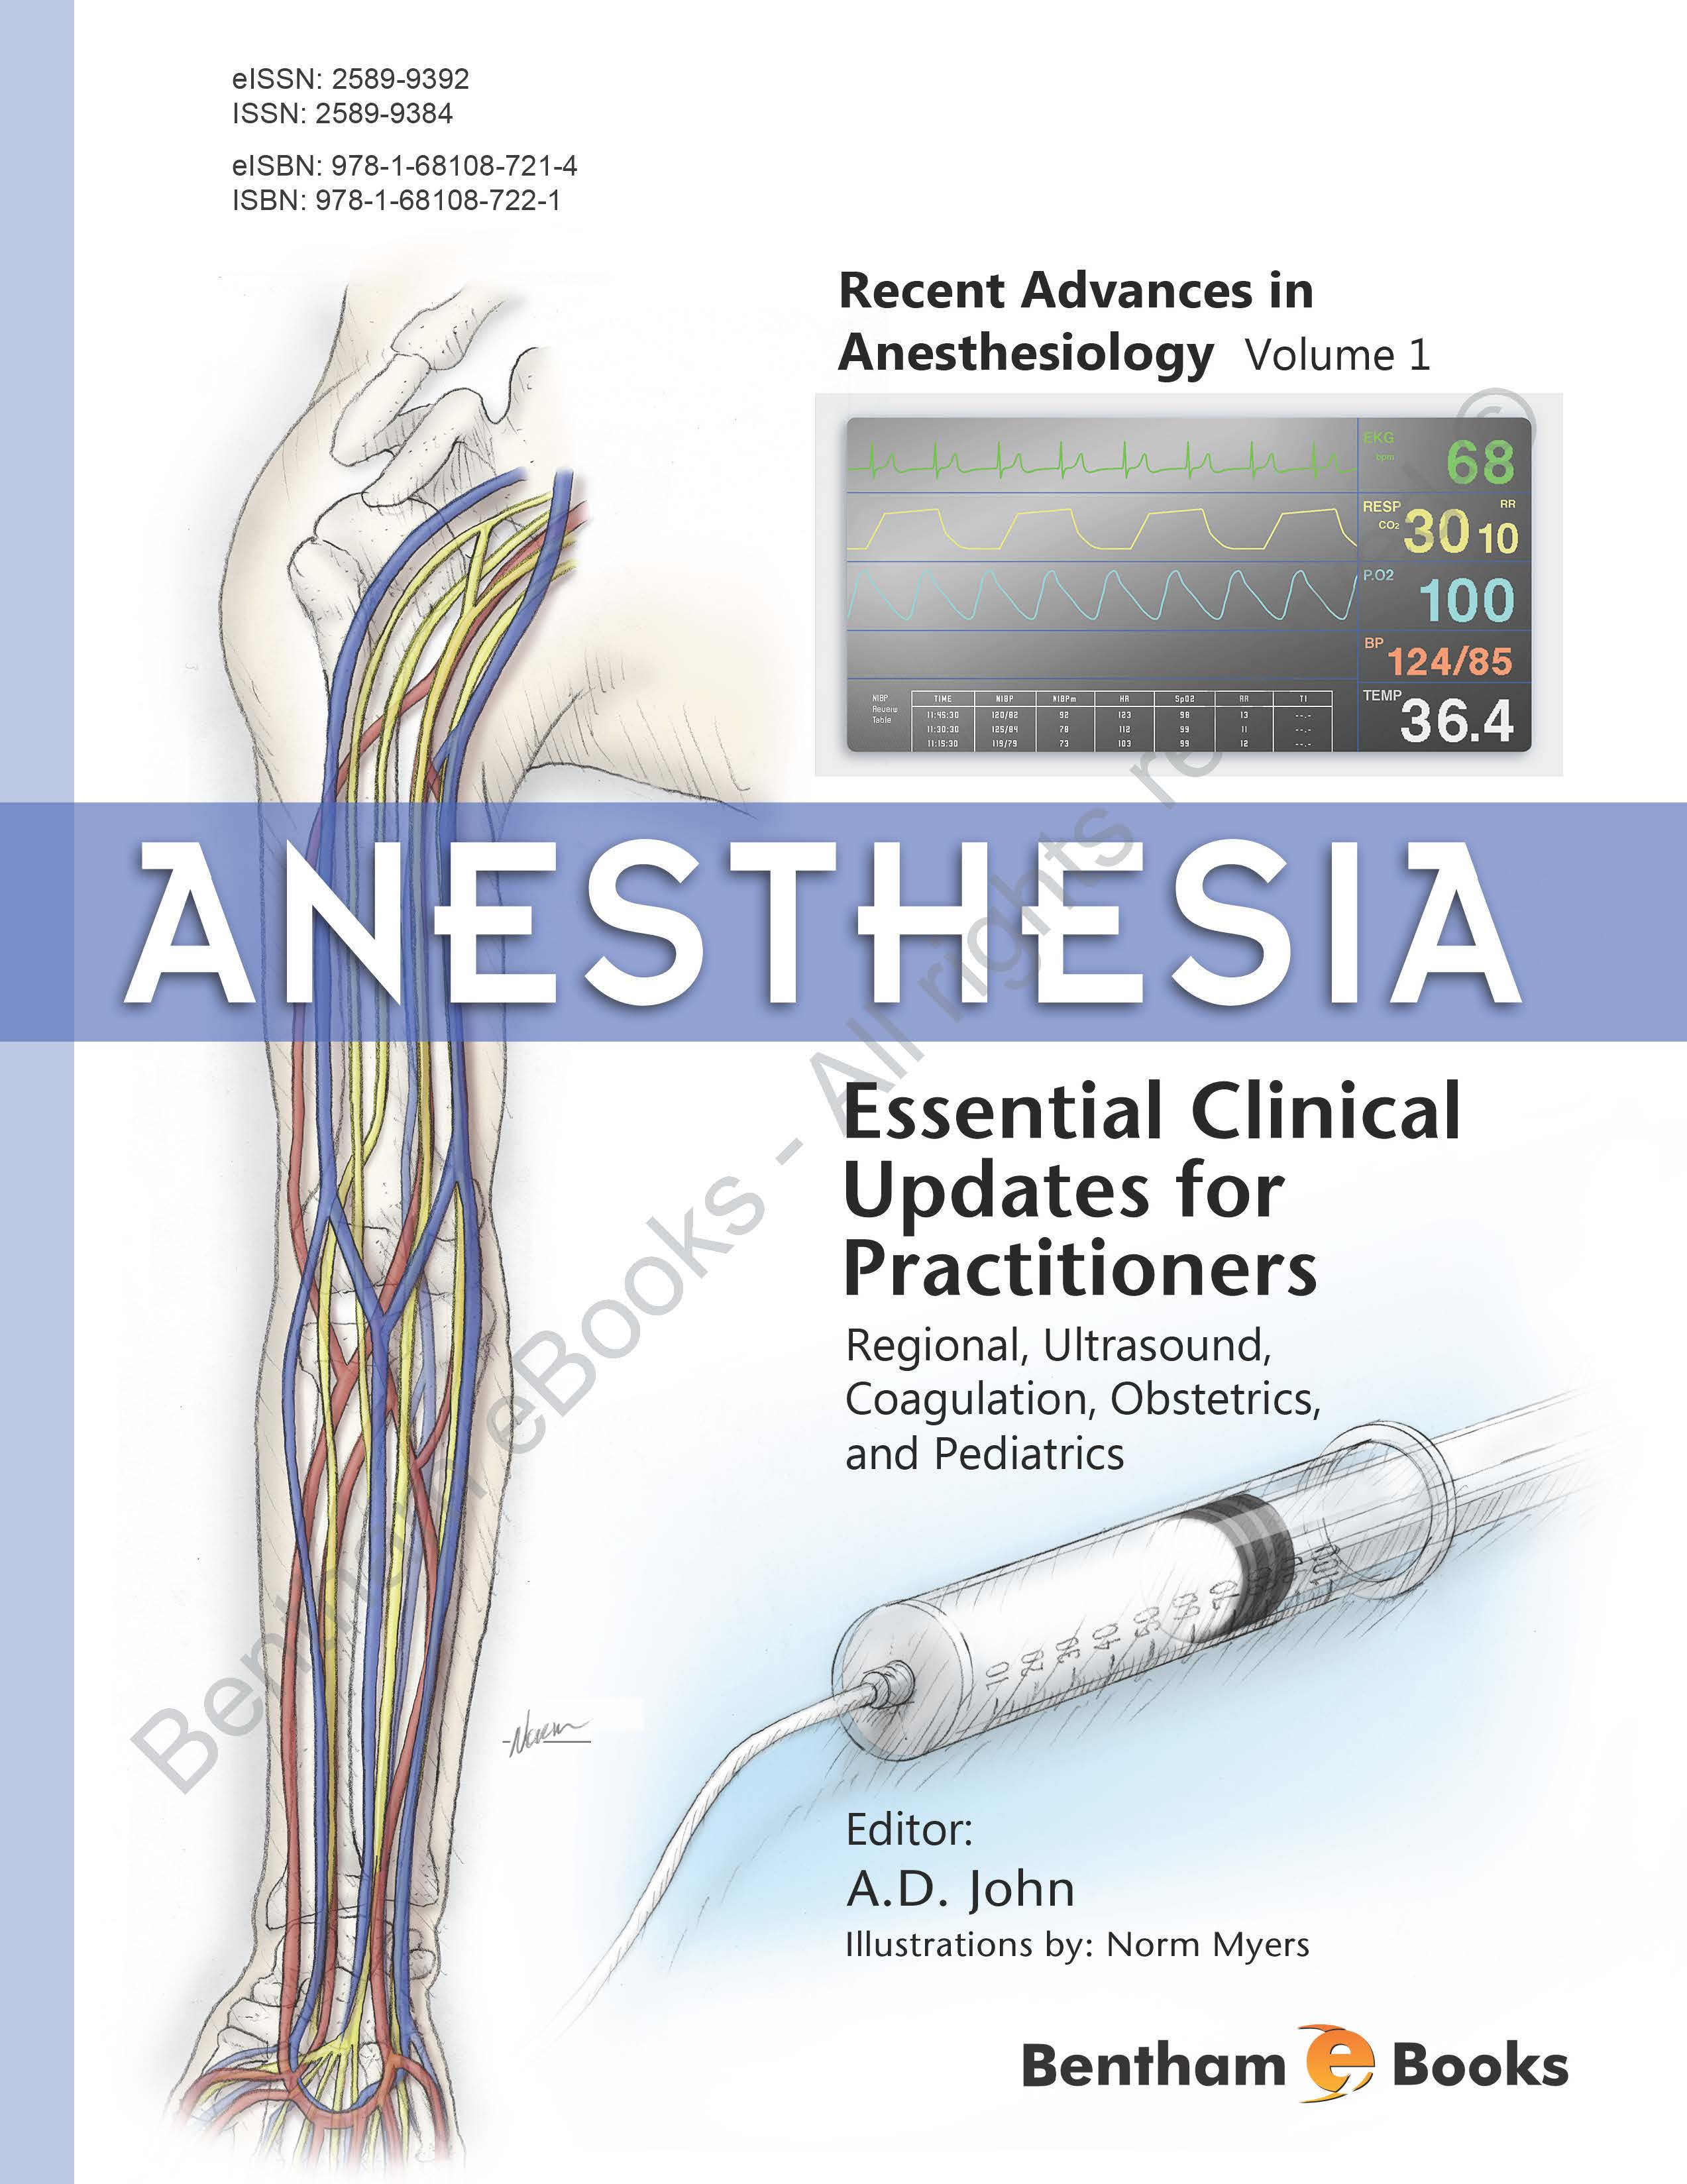 Anesthesia: Essential Clinical Updates for Practitioners – Regional, Ultrasound, Coagulation, Obstetrics and Pediatrics